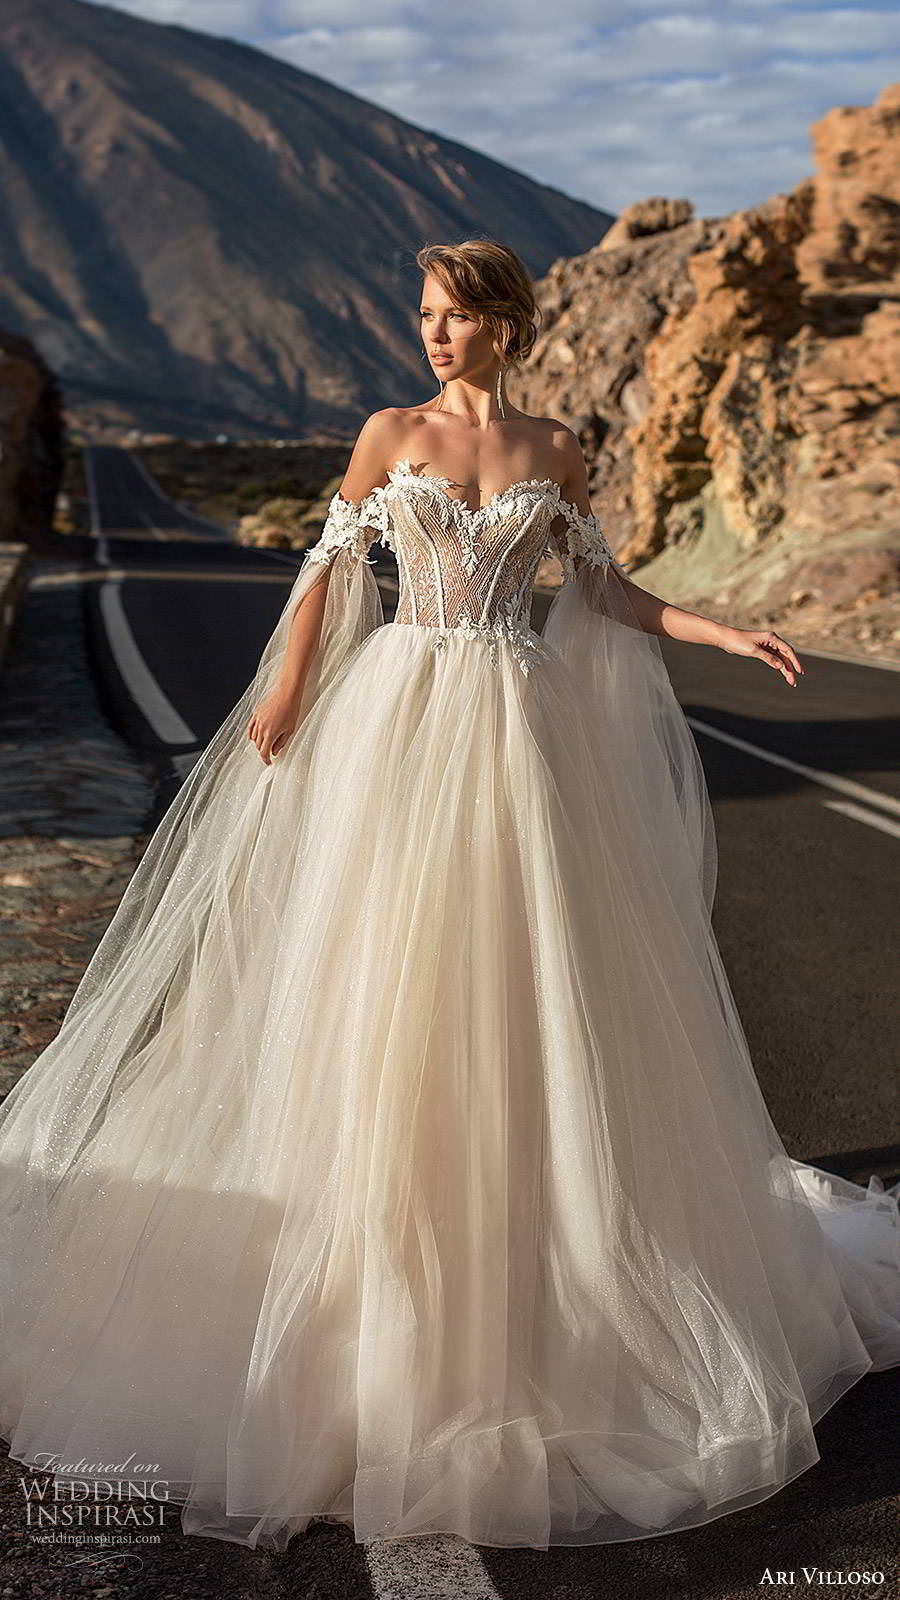 ari villoso 2020 bridal off shoulder sweetheart neckline embellished bodice a line ball gown wedding dress (15) romantic princess sheer corset back chapel train mv